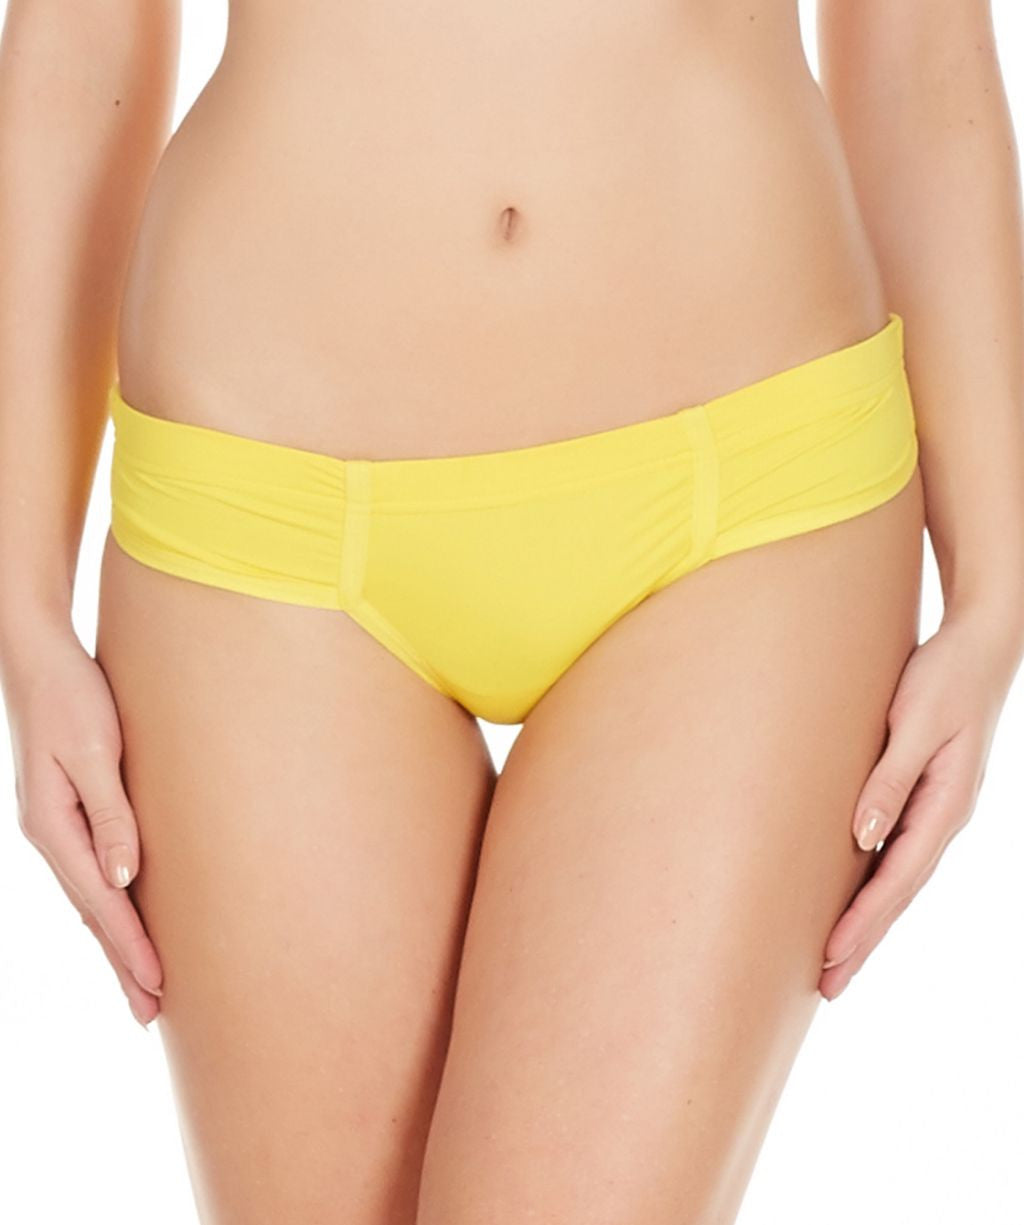 La Intimo Yellow Women Just Cut Panty Nylon Spandex Bikini